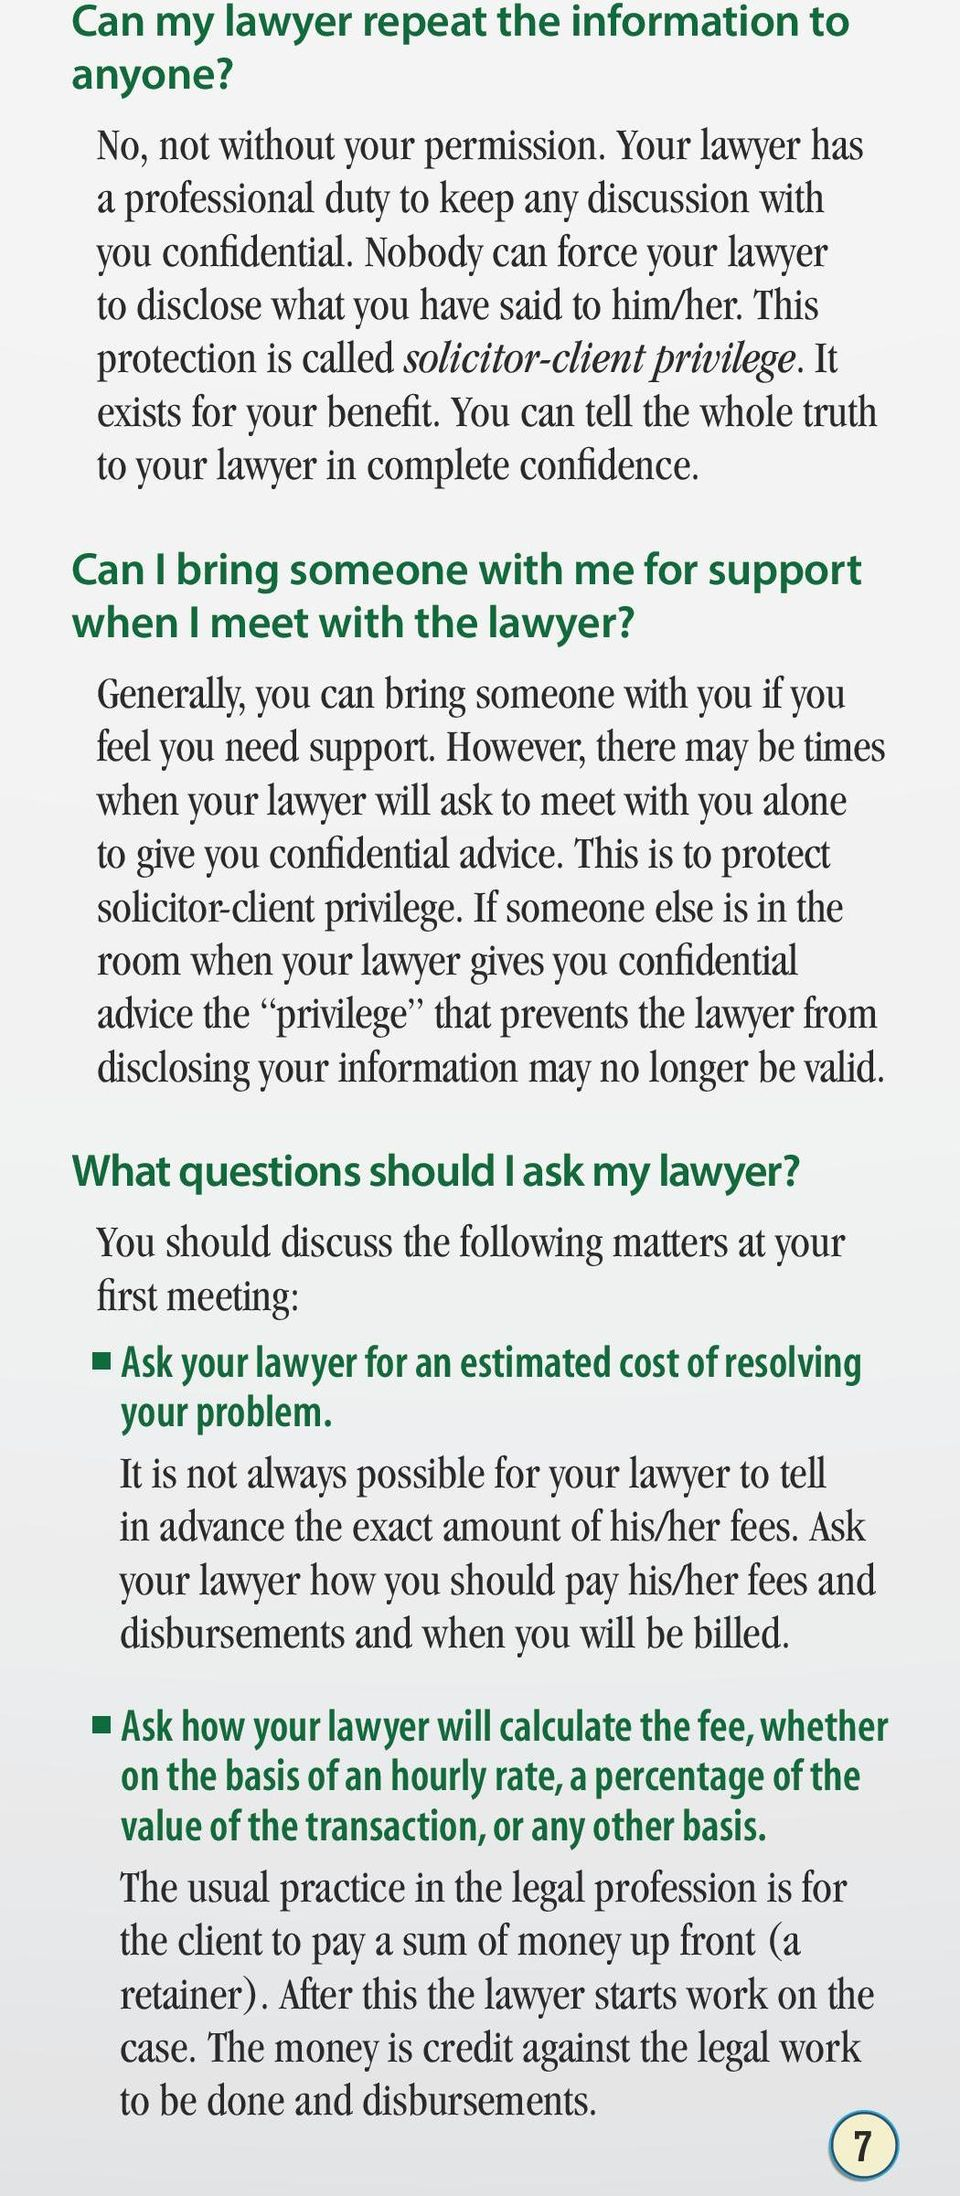 You can tell the whole truth to your lawyer in complete confidence. Can I bring someone with me for support when I meet with the lawyer?